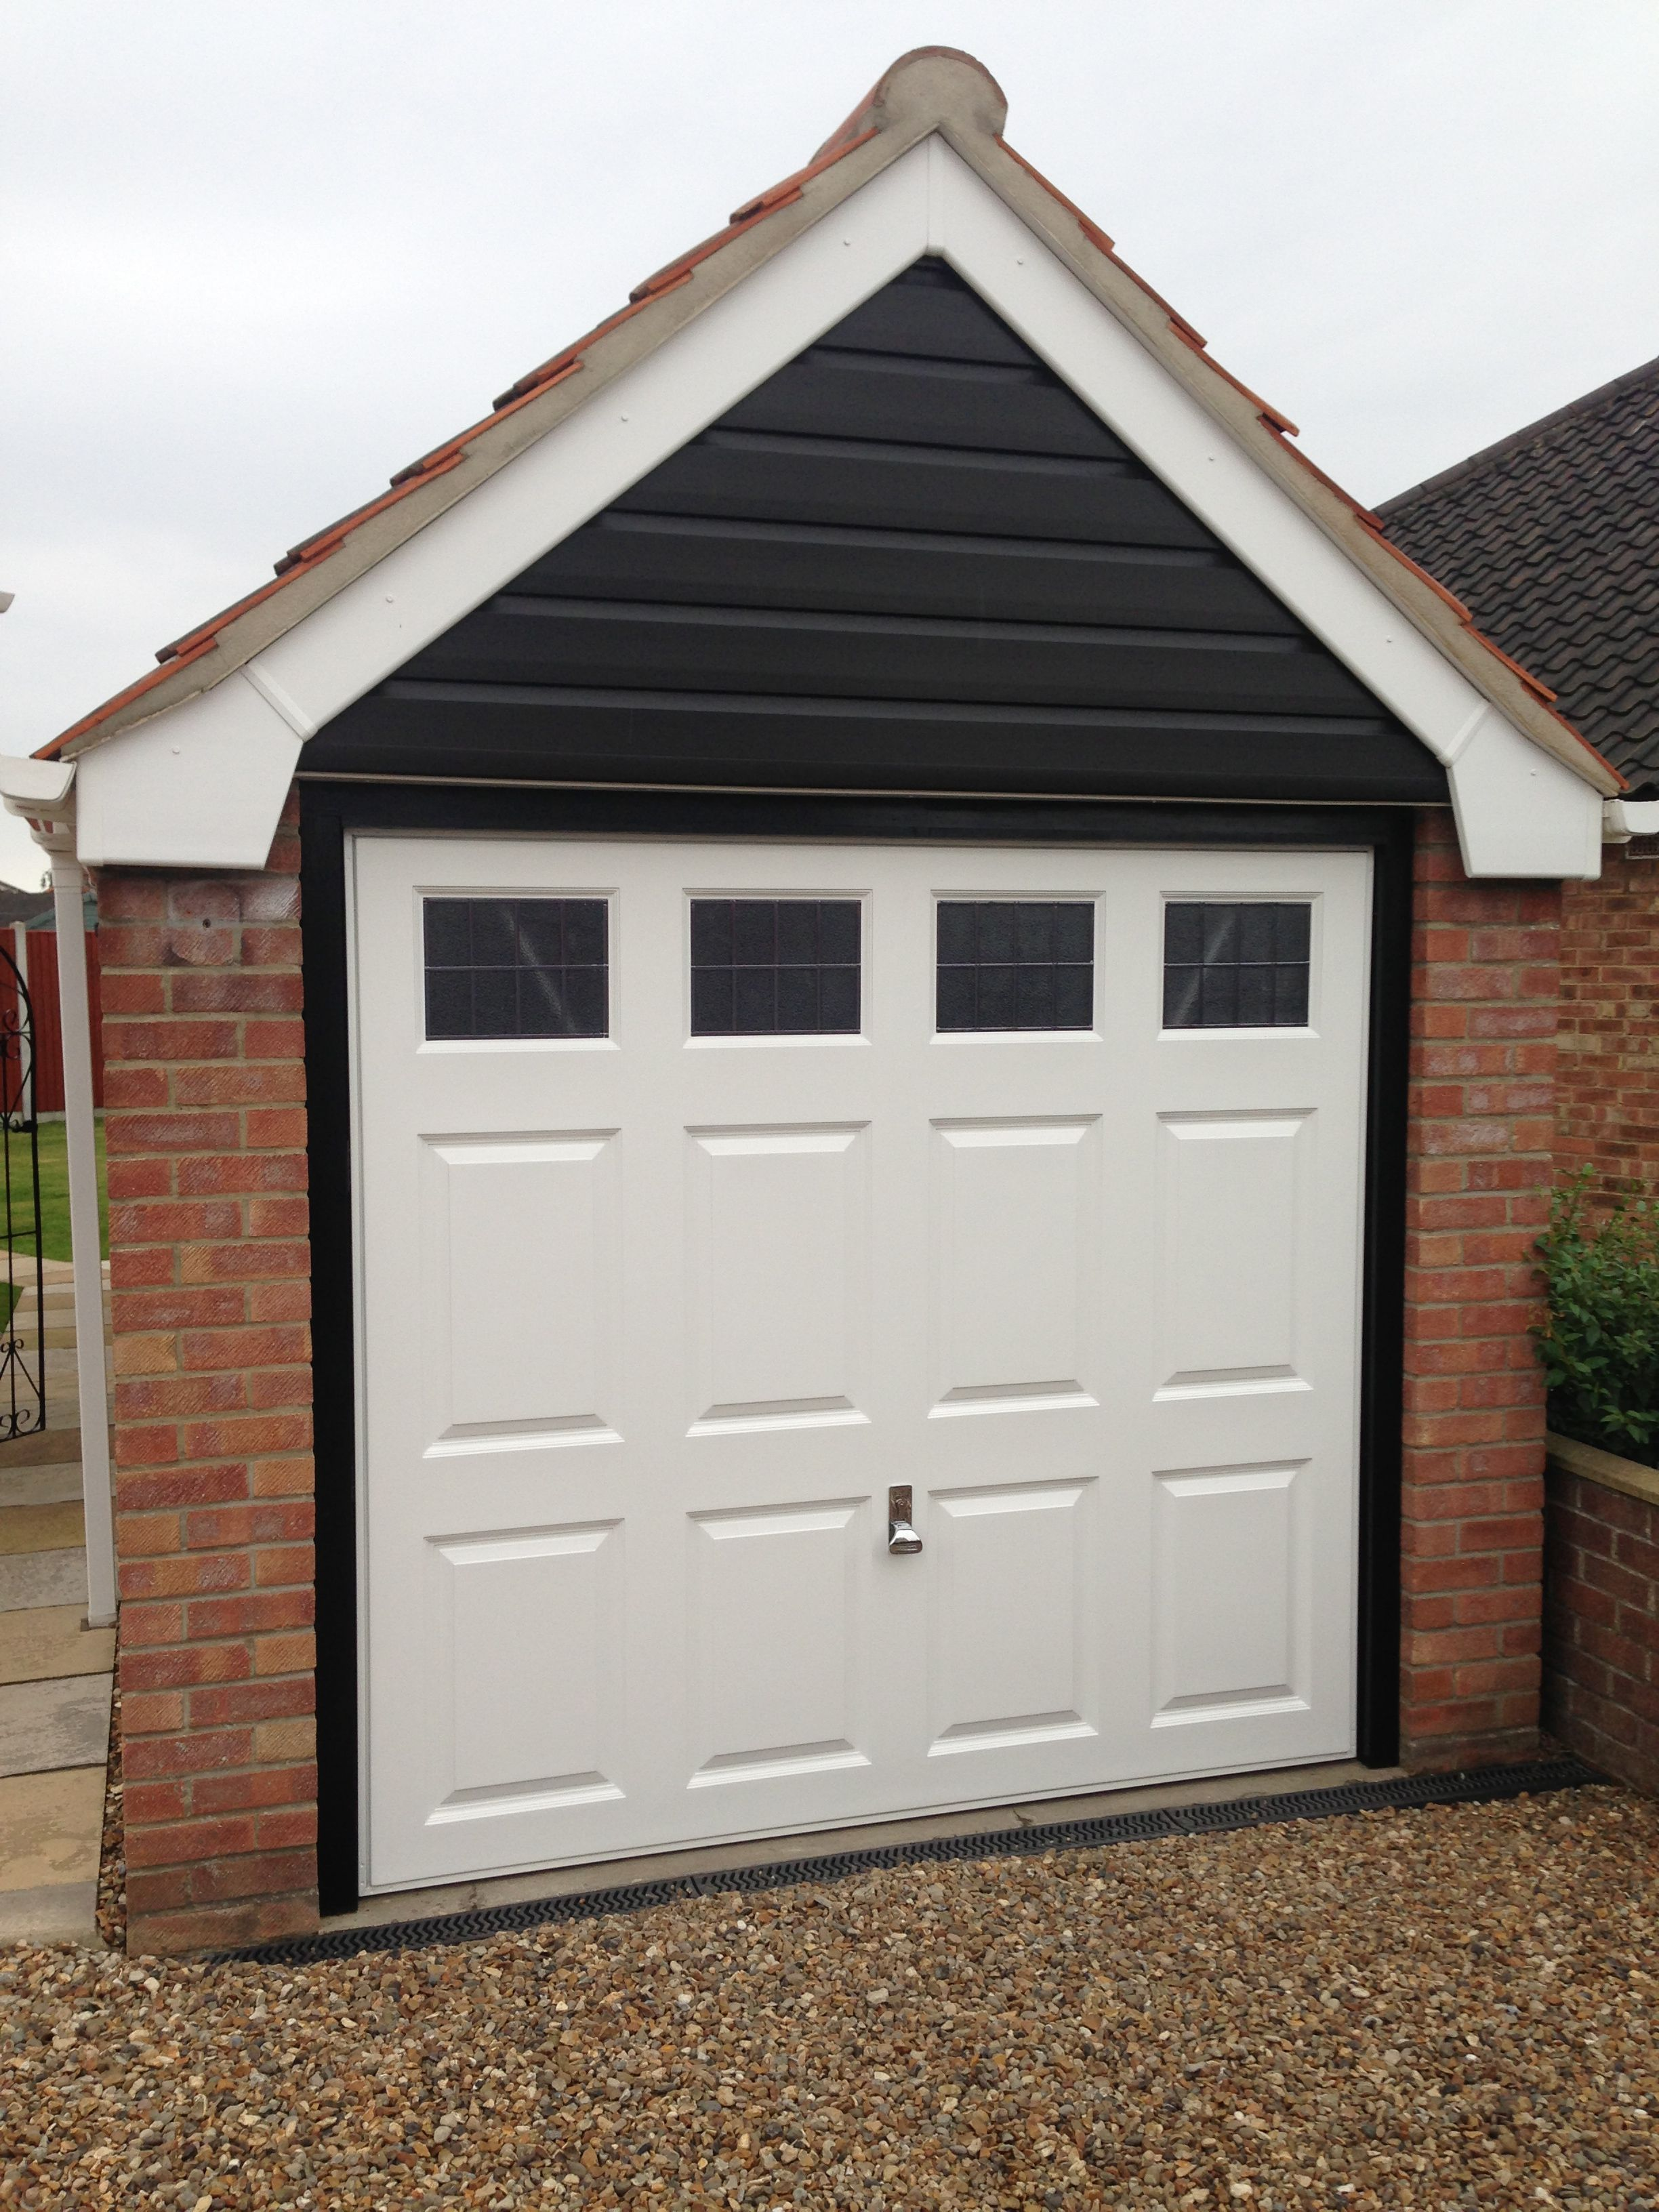 An example of our garage doors in navy blue